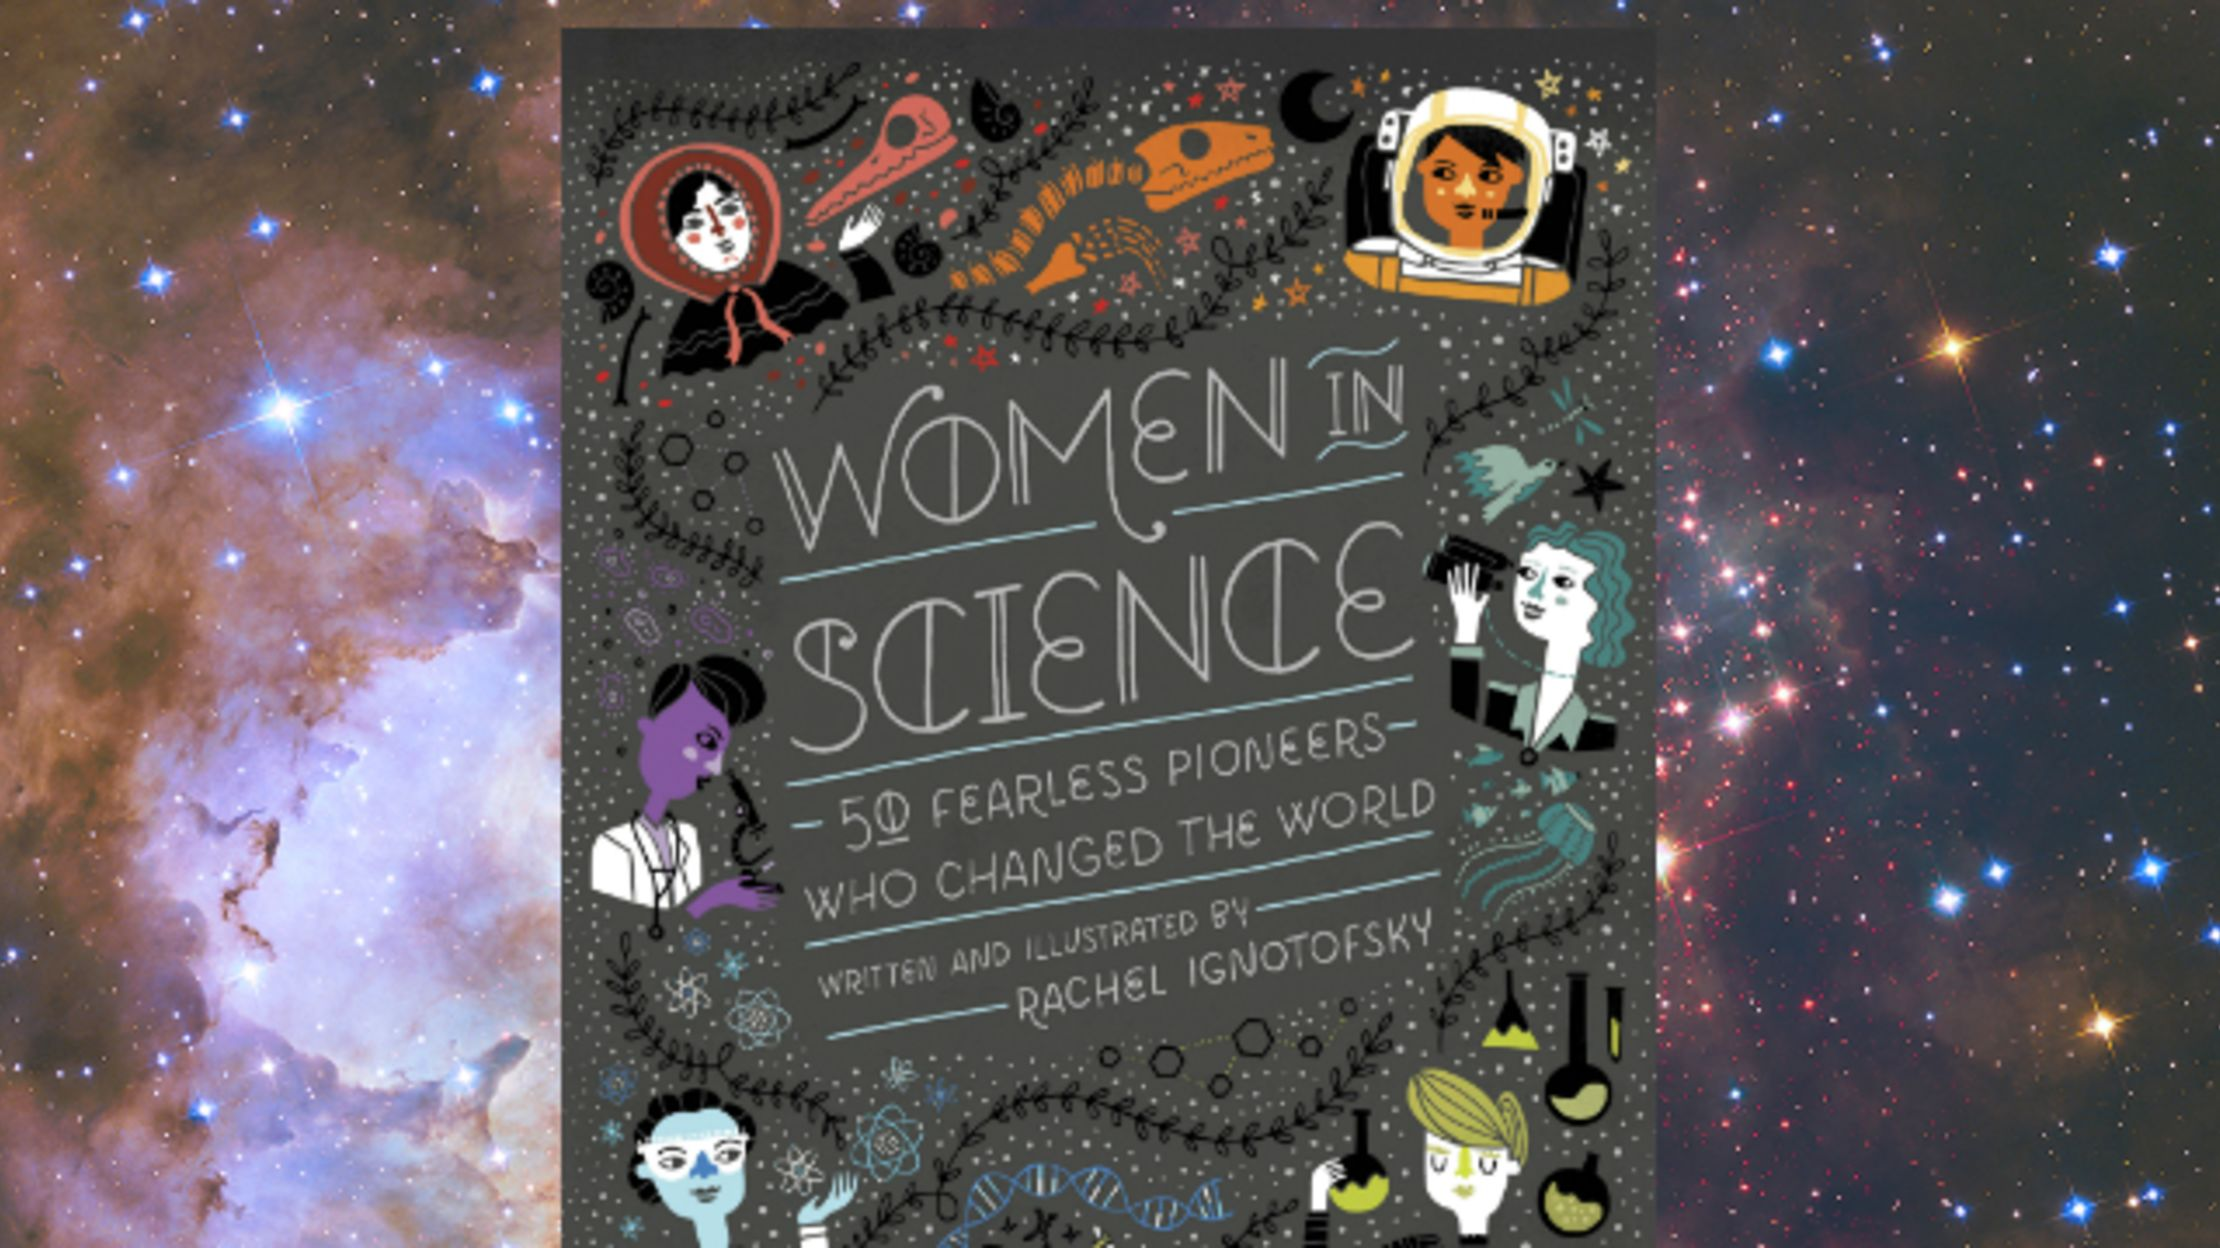 Vol Nantes Lyon Pas Cher Picture Book Women In Science Captures Little Known Stories Of